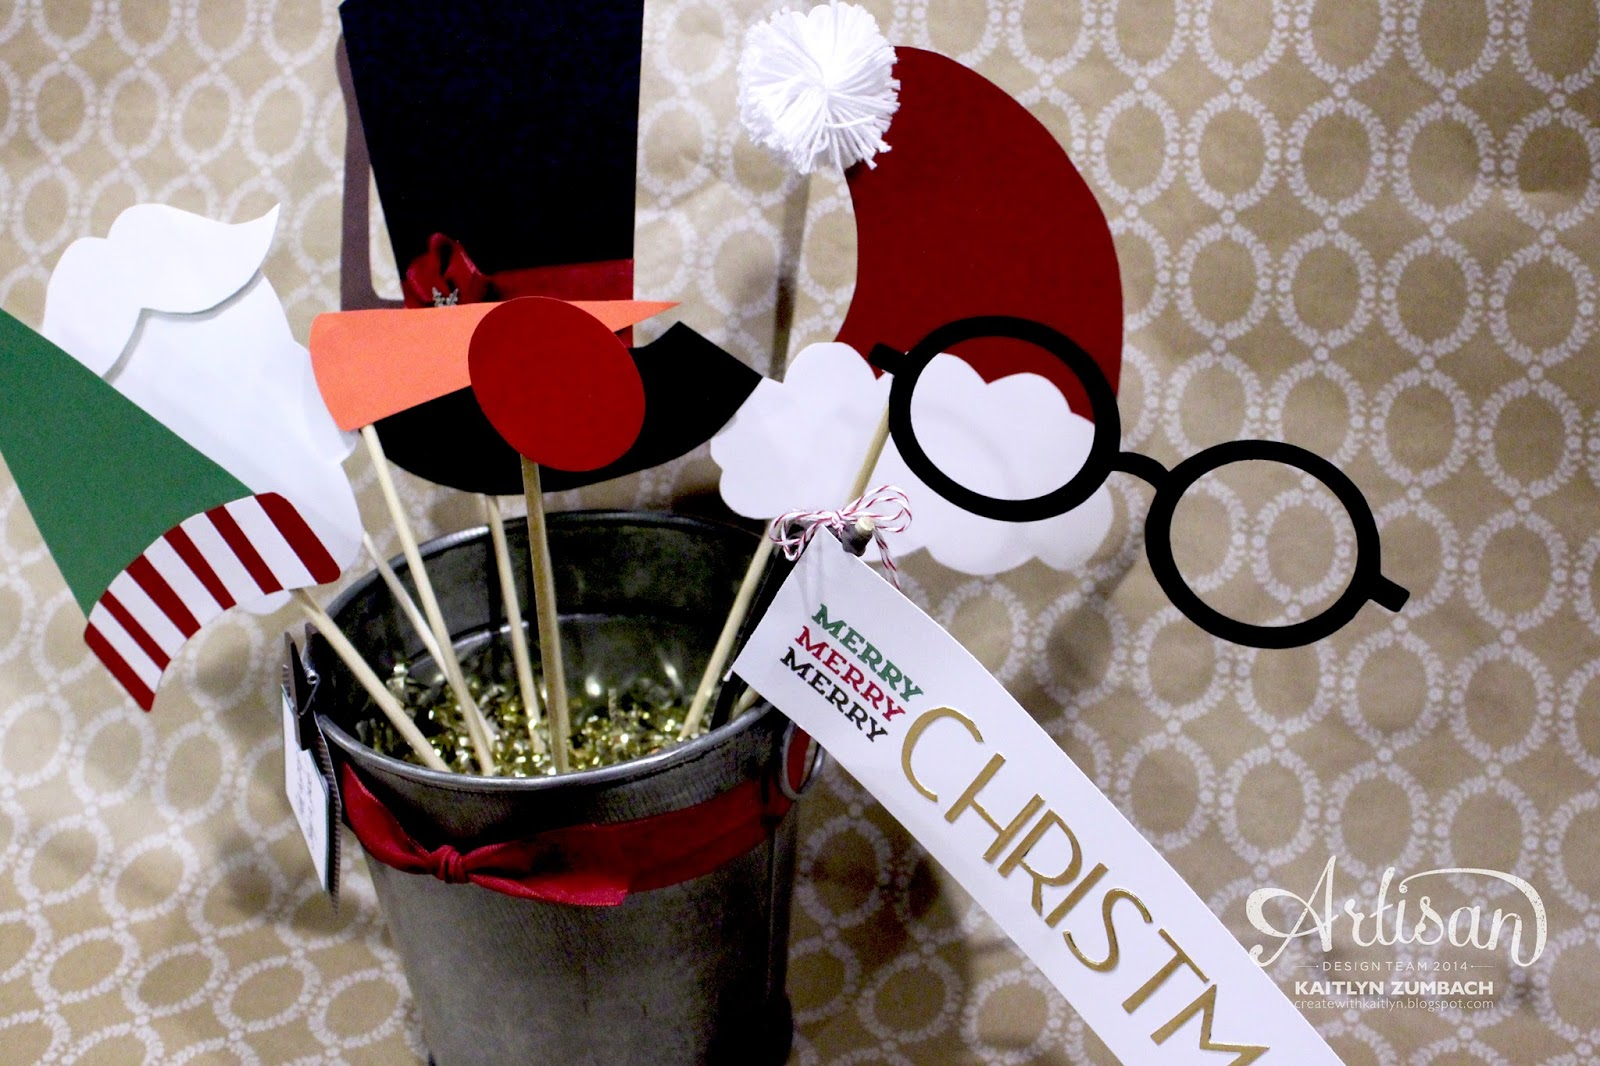 when i seen the festive designer kraft paper rolls i thought the would be perfect for a photo booth backdrop it couldnt be any easier just hang up a